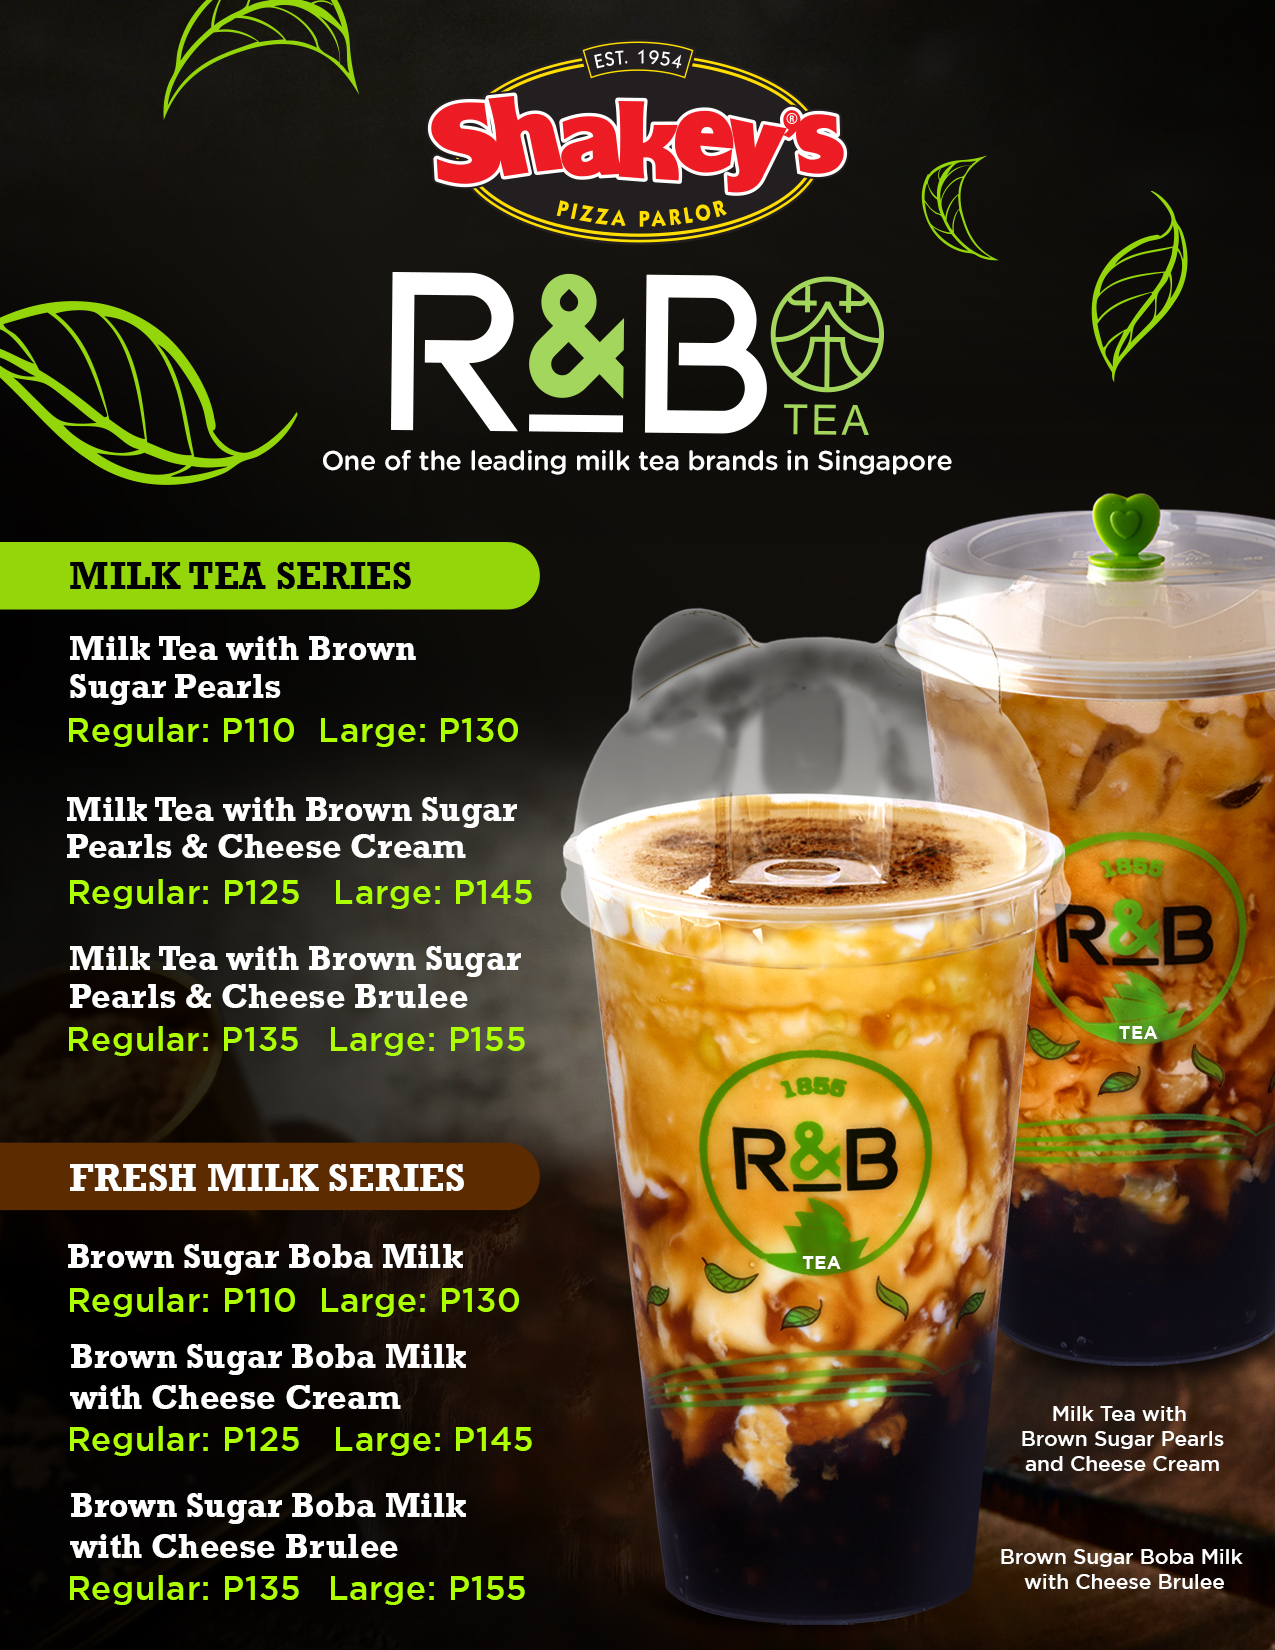 R&B Milk Tea Shakeys Menu